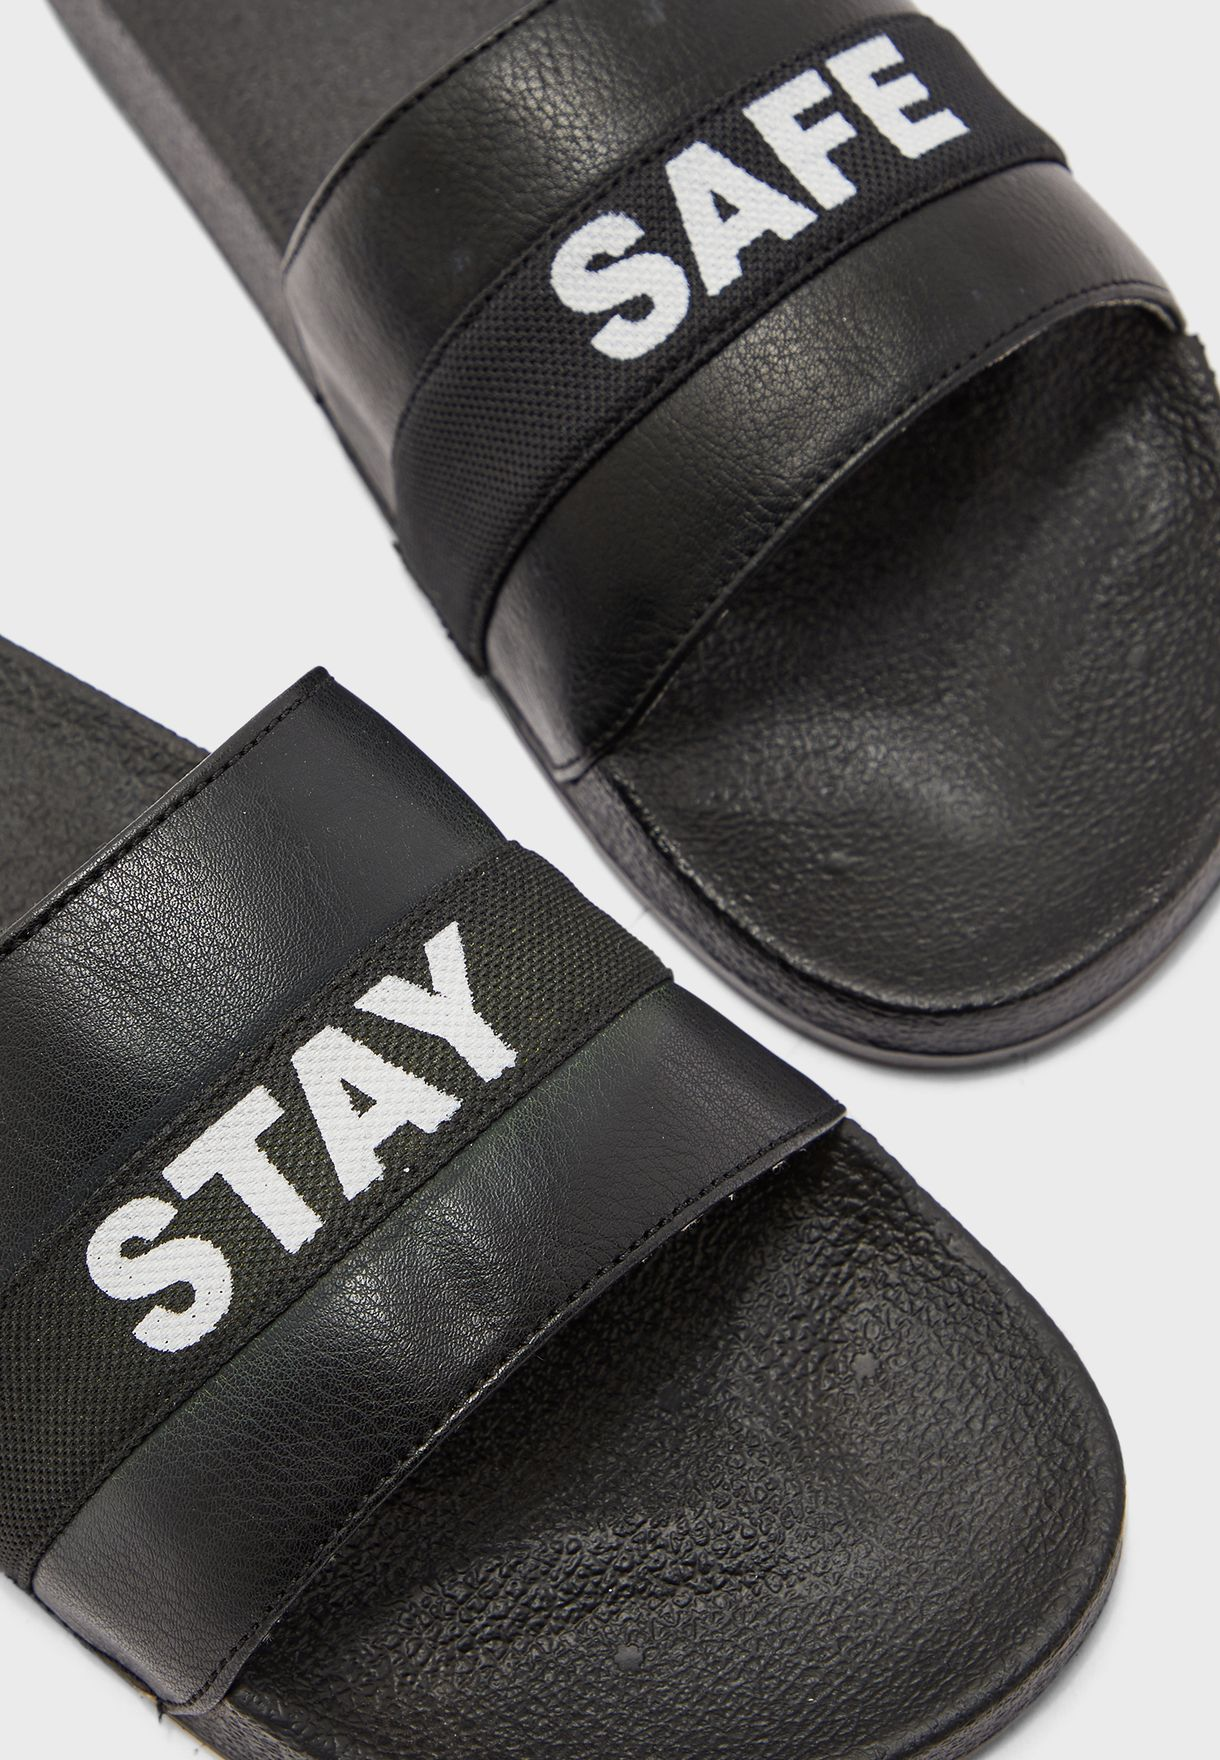 STAY' 'SAFE' Slides